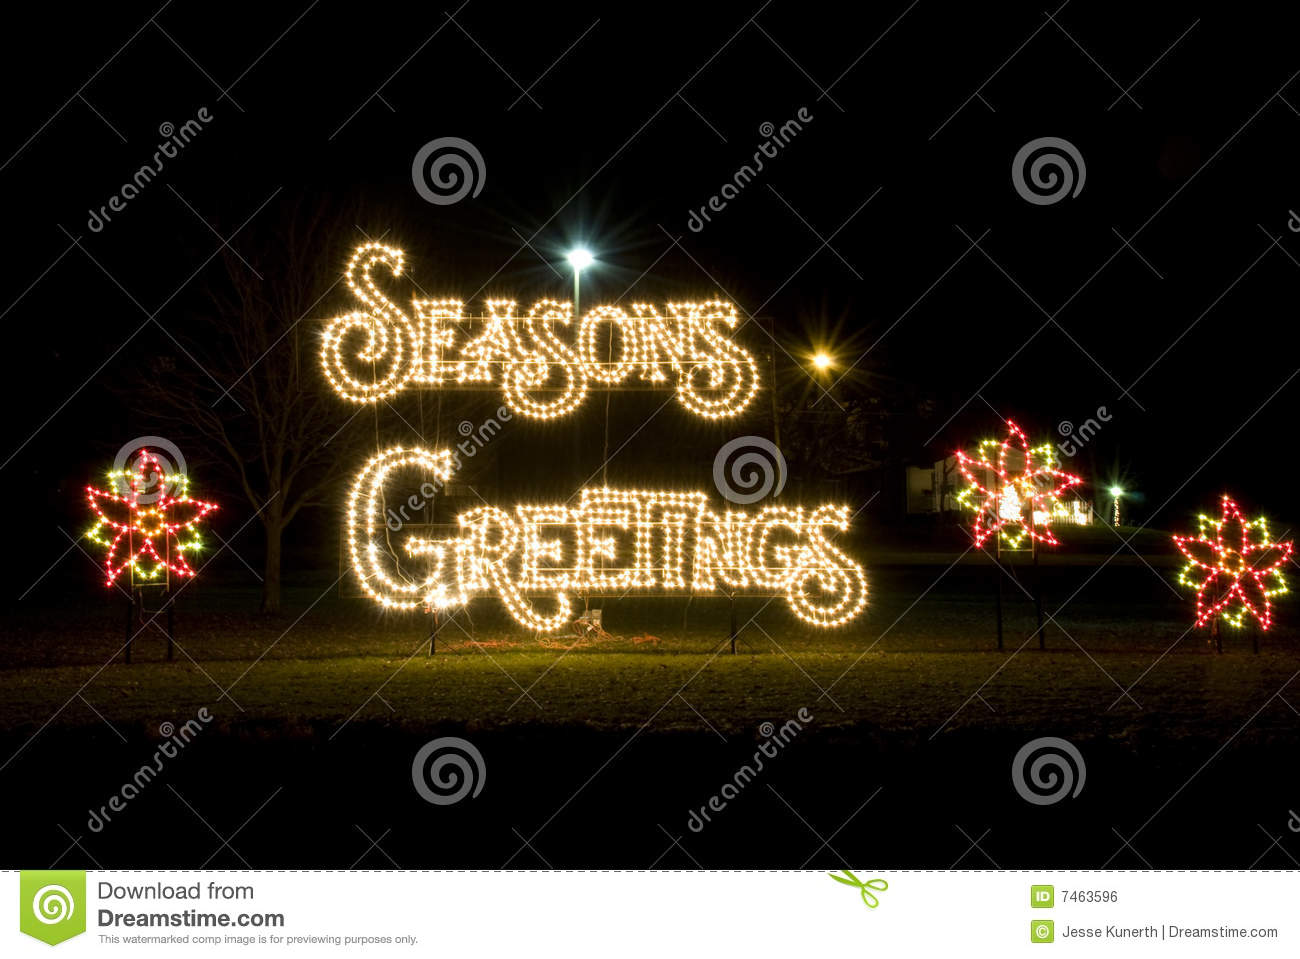 Season greetings christmas lights stock photo image of christmas season greetings christmas lights royalty free stock photo m4hsunfo